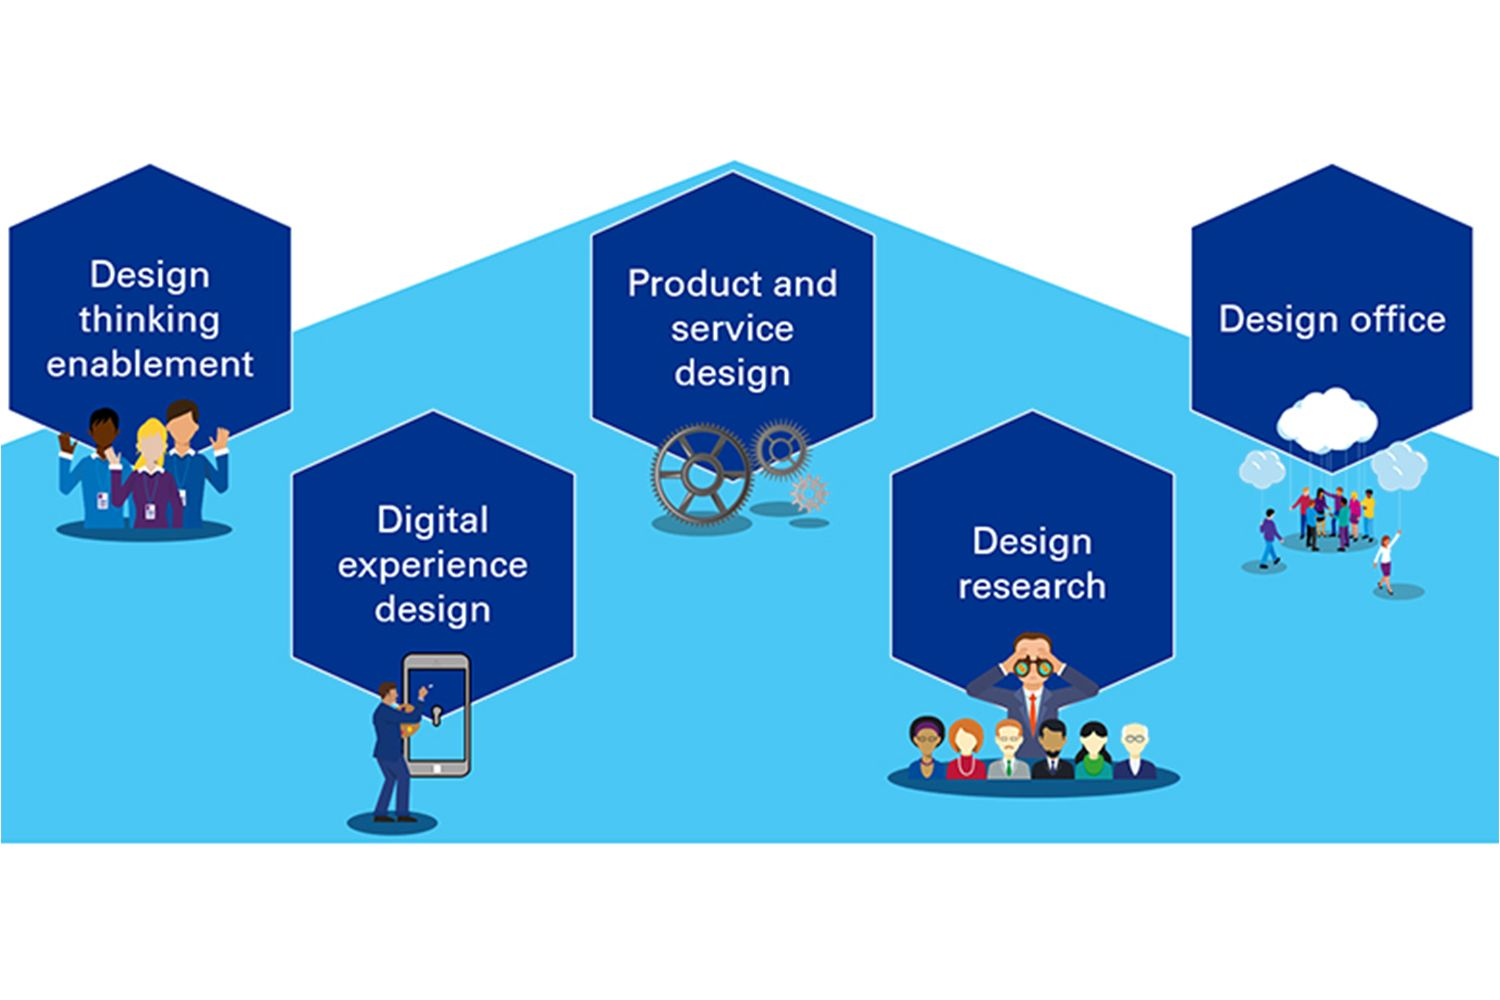 Design thinking service offerings